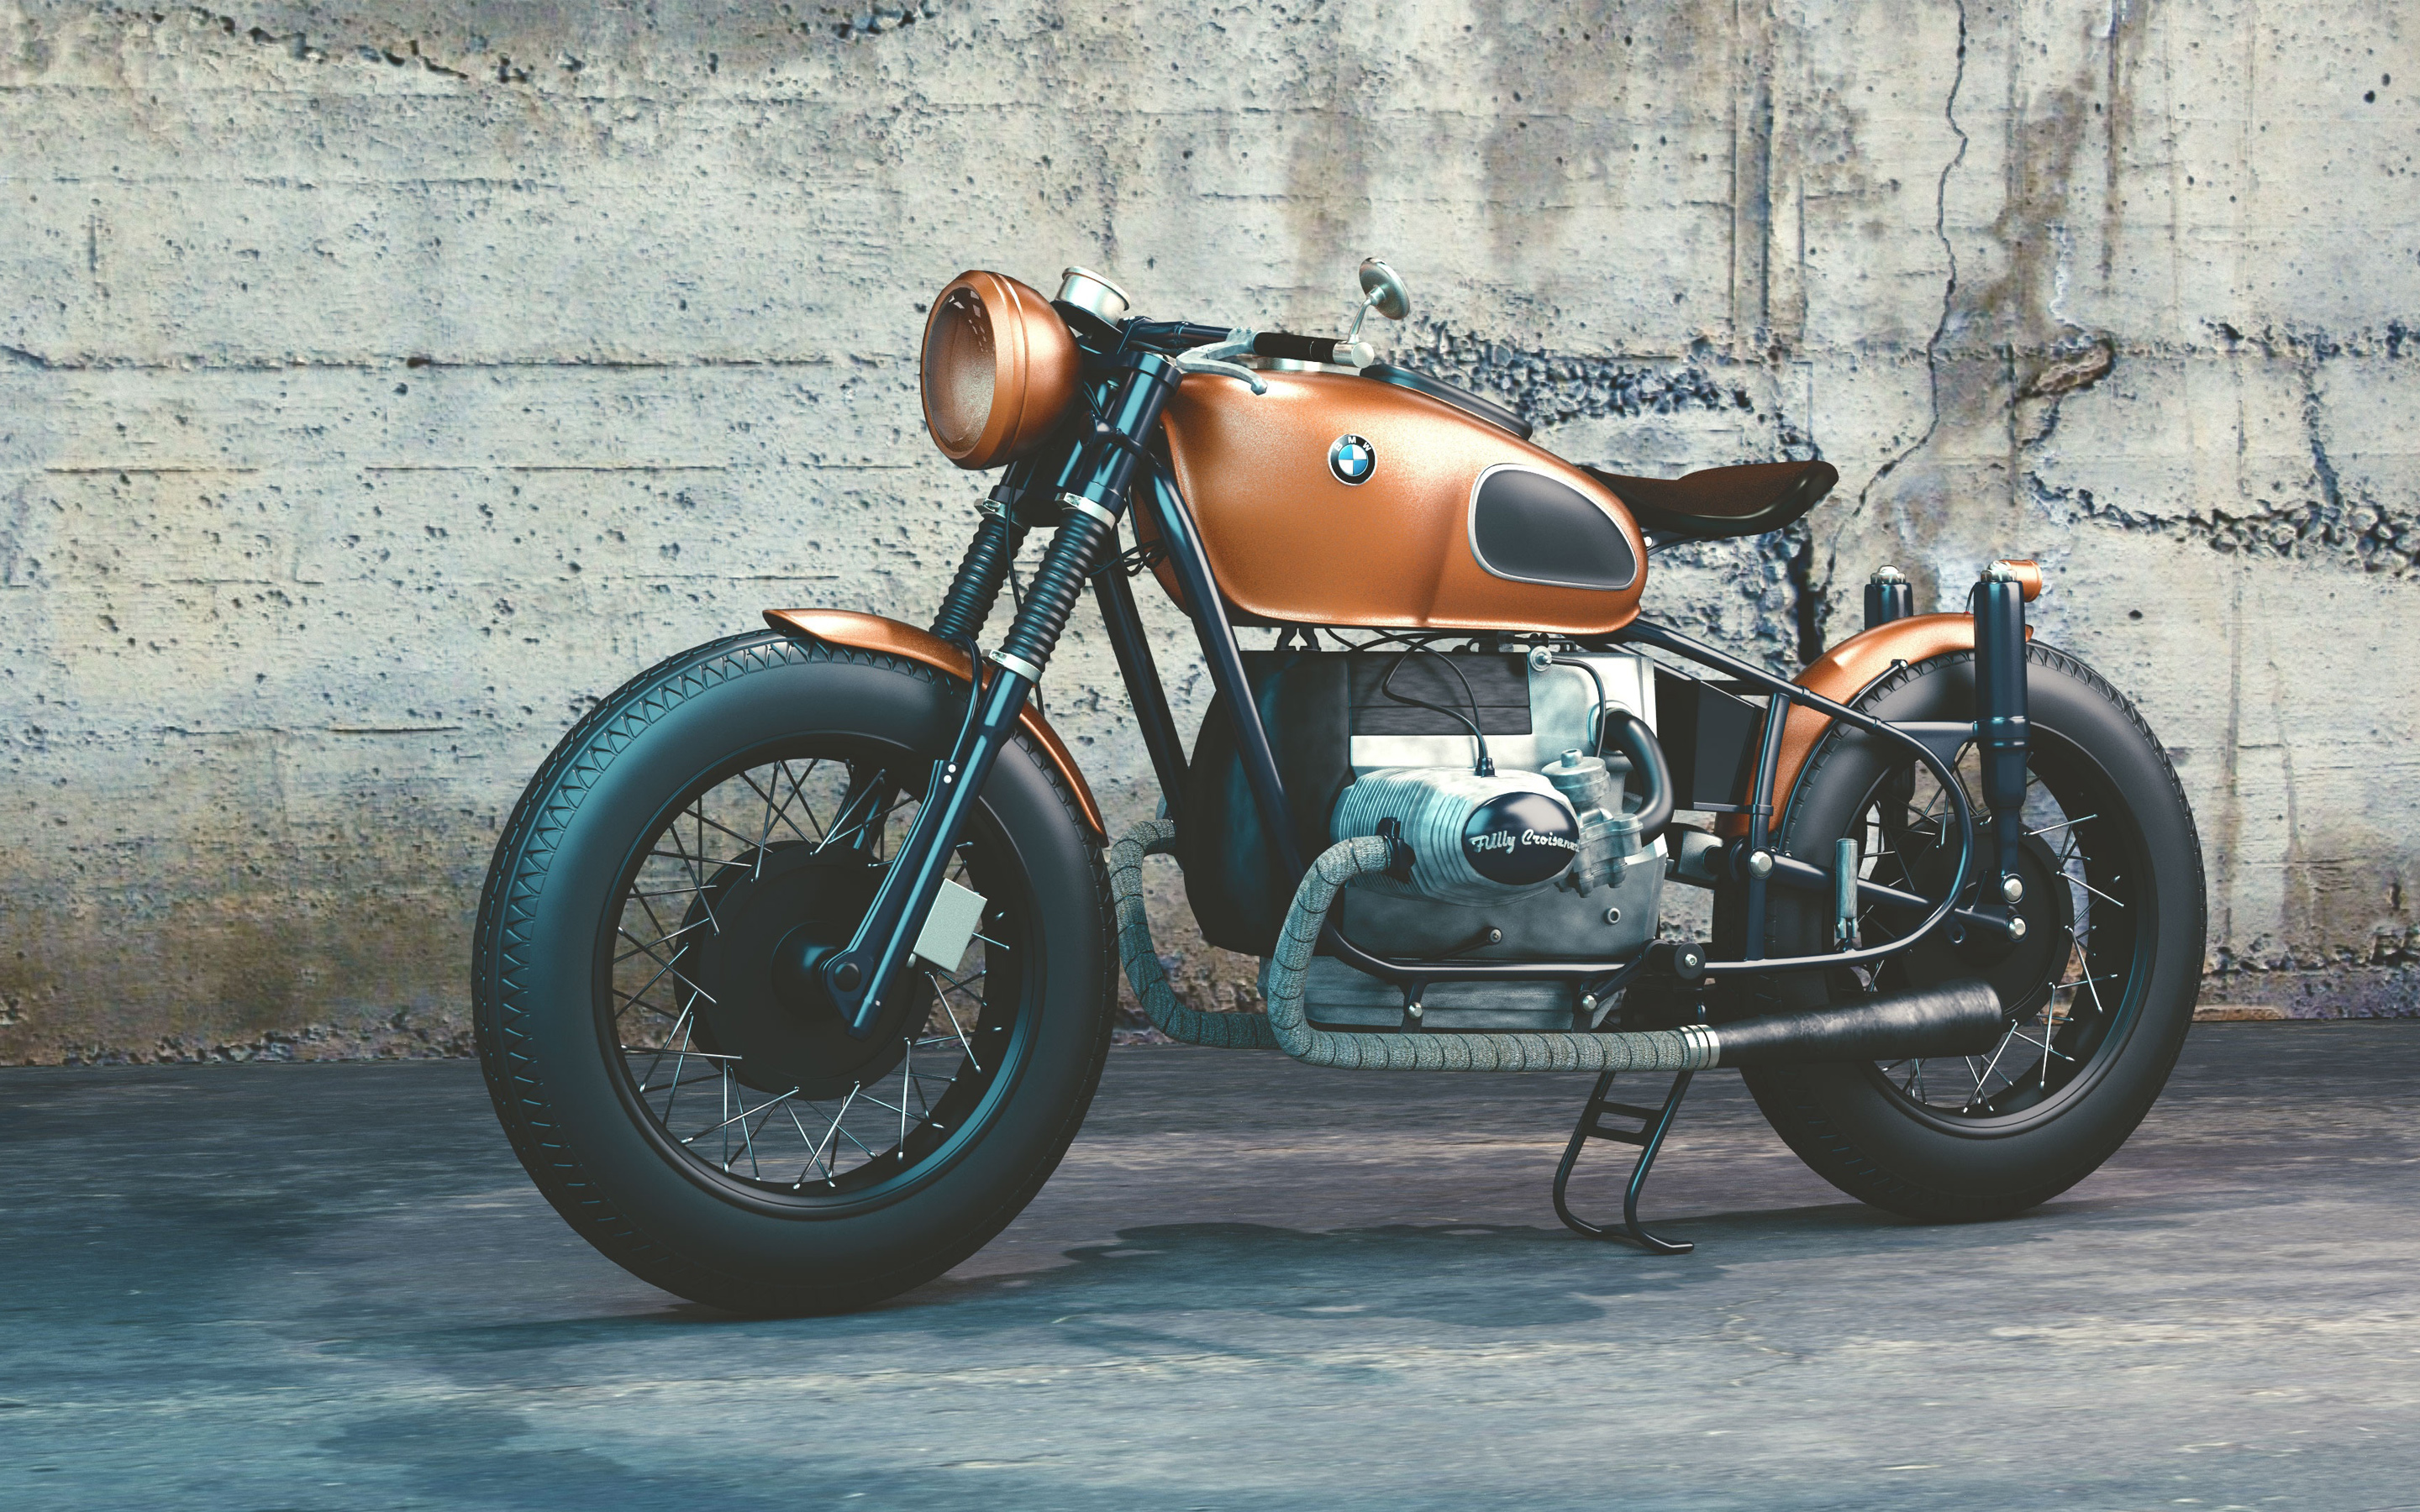 bmw r80 4k widesceen desktop wallpaper 666